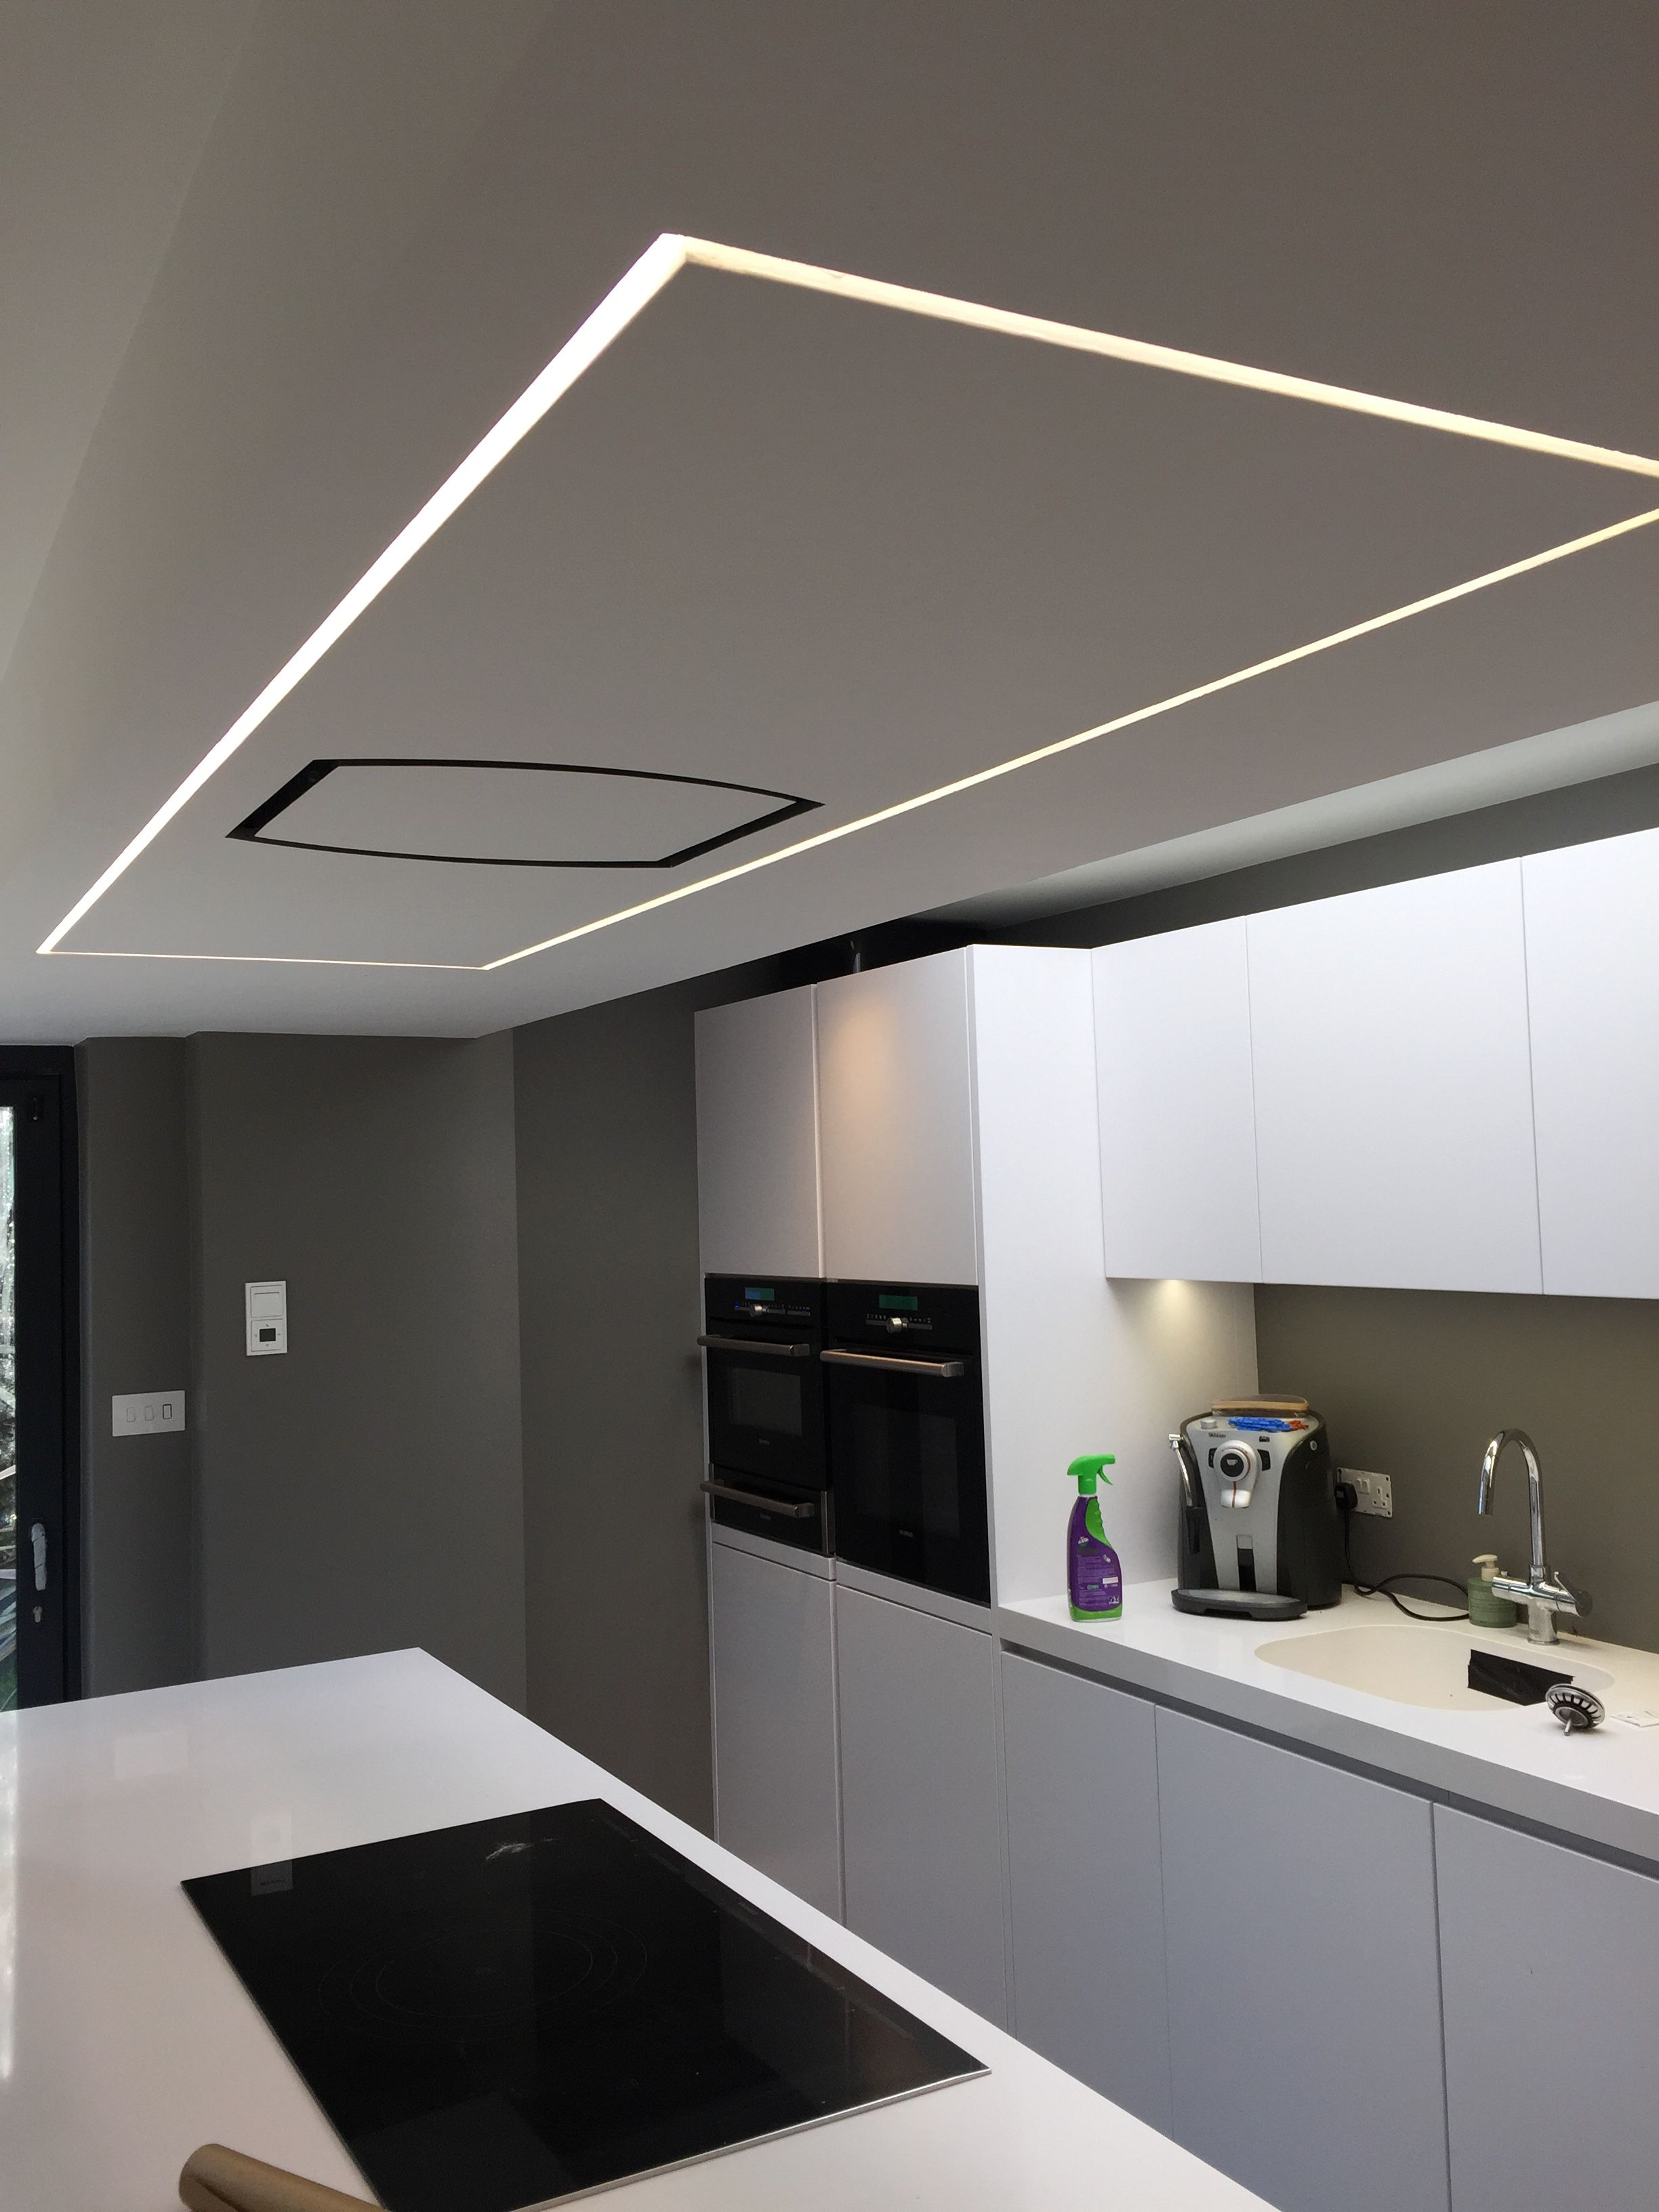 33 trimless concealed continuous led